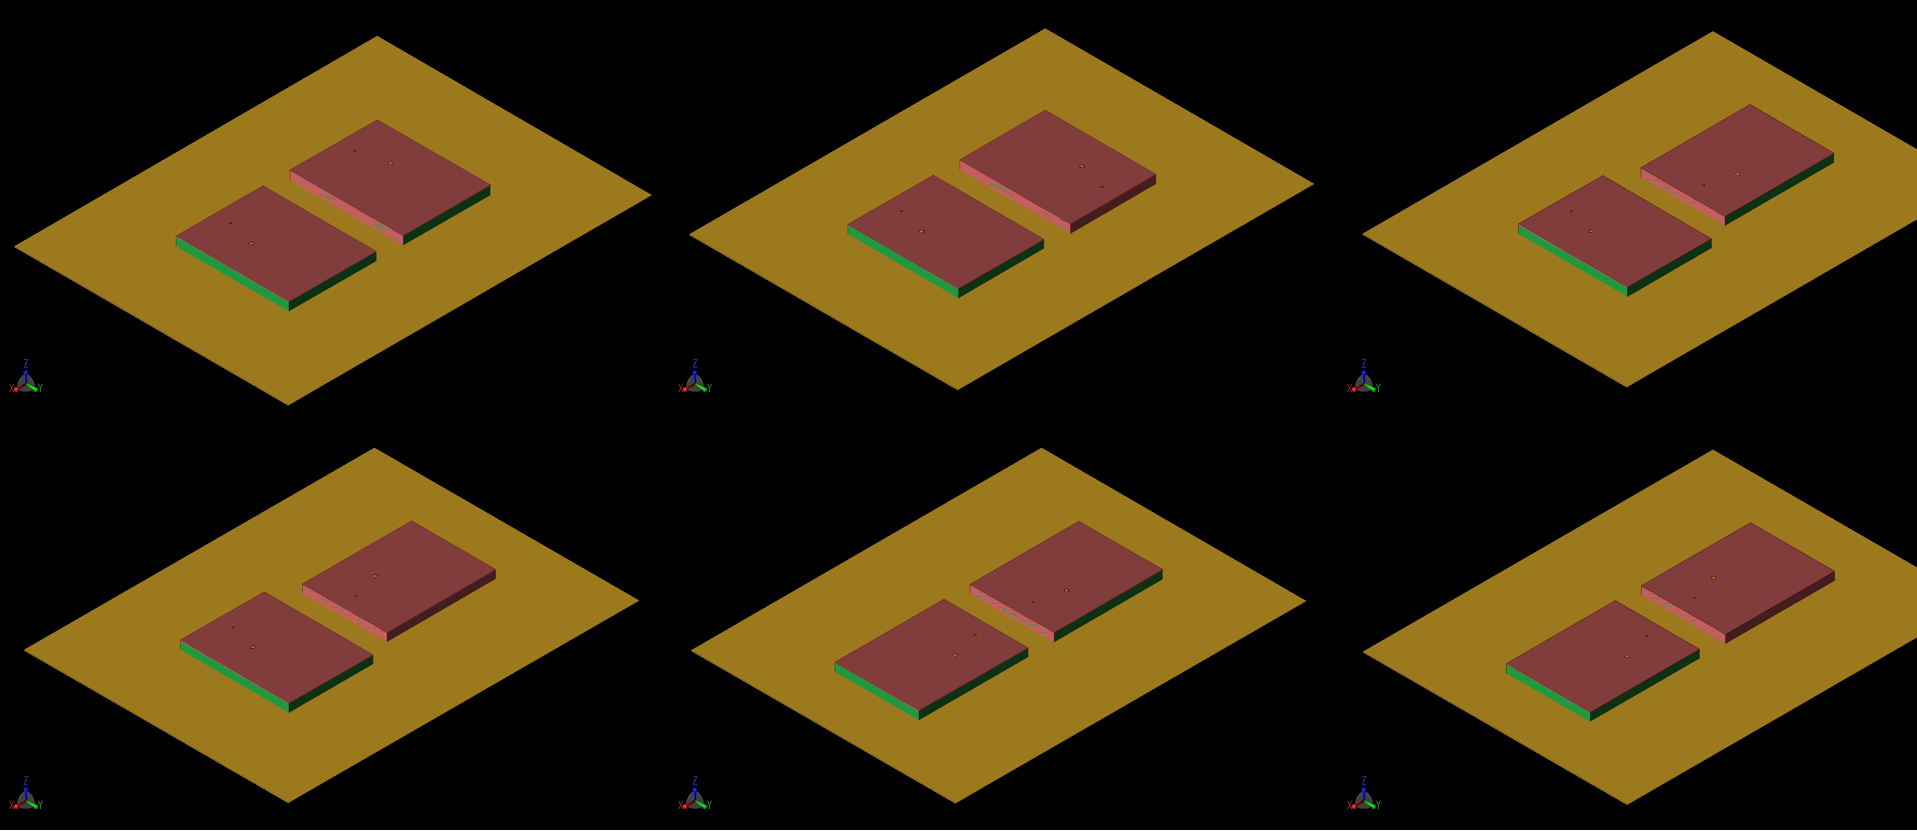 Figure 11: Six configurations of a 1x2 MIMO array were evaluated for performance. In each case, the separation between antenna elements is 10 mm and a shorted side is always facing the adjacent element. The configurations are labeled a, b, and c across the top row and d, e, and f across the bottom. In each case there is some rotation of the elements to change the location of the feed points and the shorting walls.